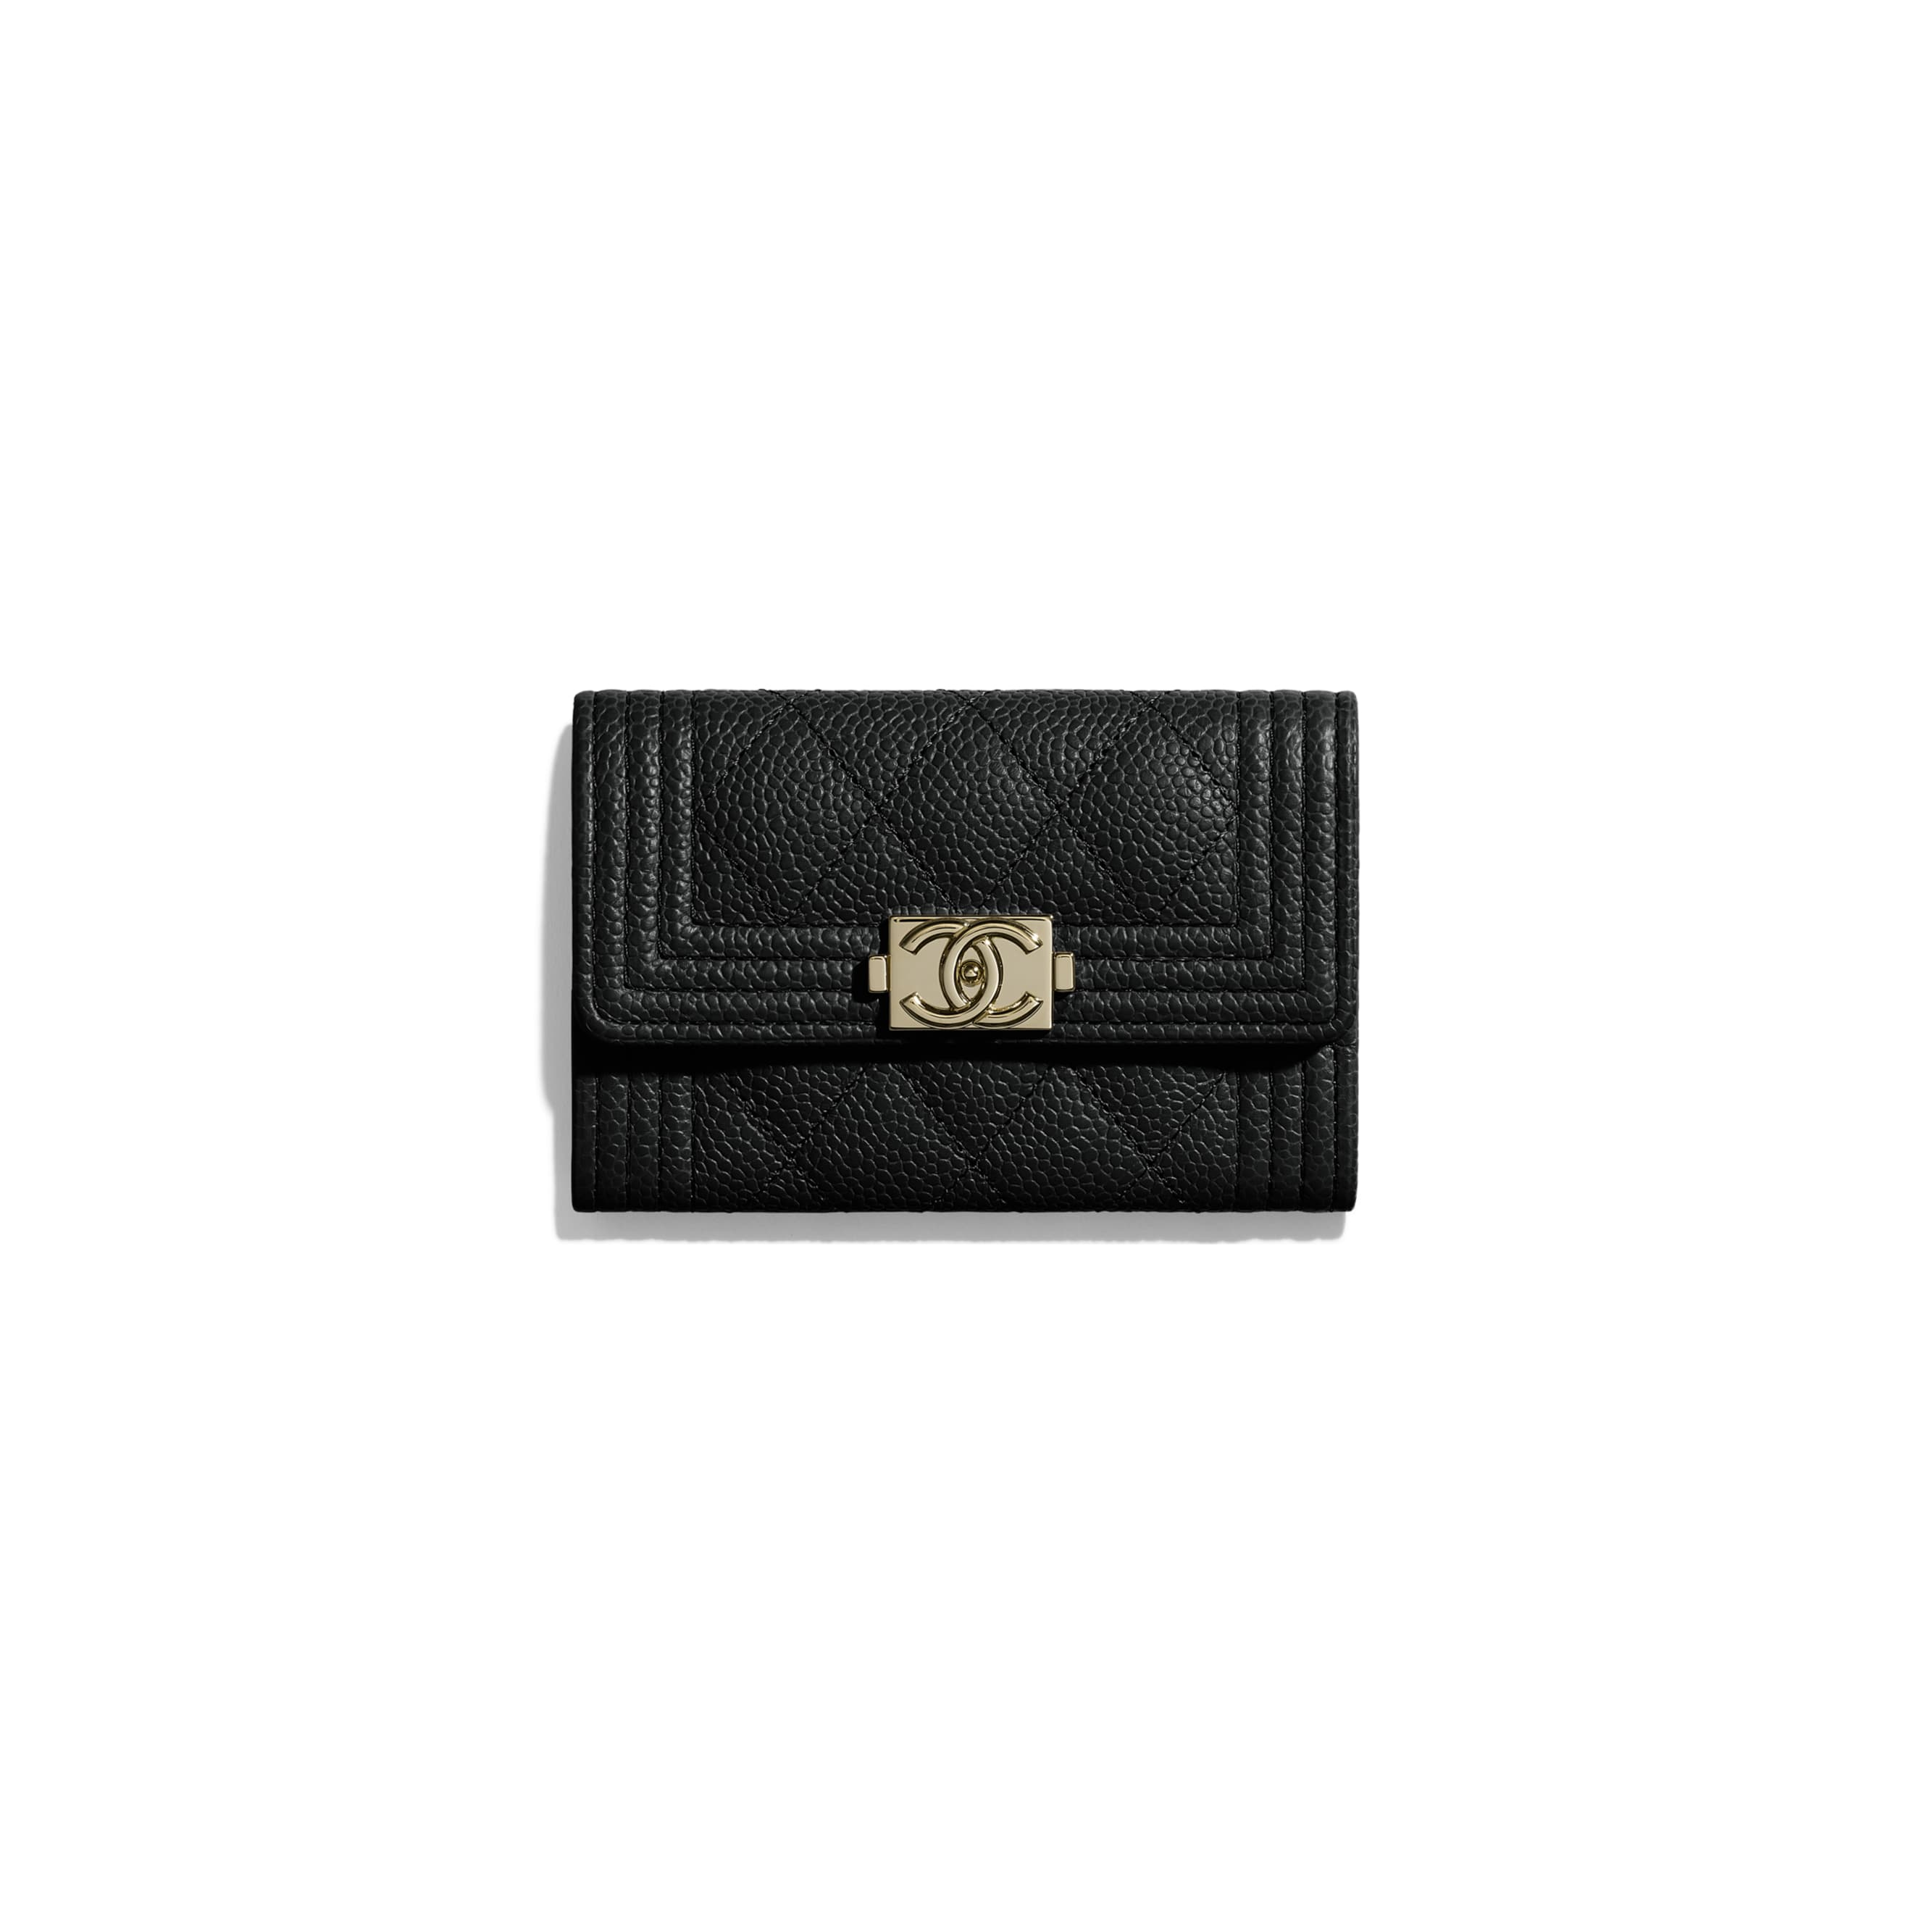 BOY CHANEL Flap Card Holder - Black - Grained Calfskin & Gold-Tone Metal - Default view - see standard sized version